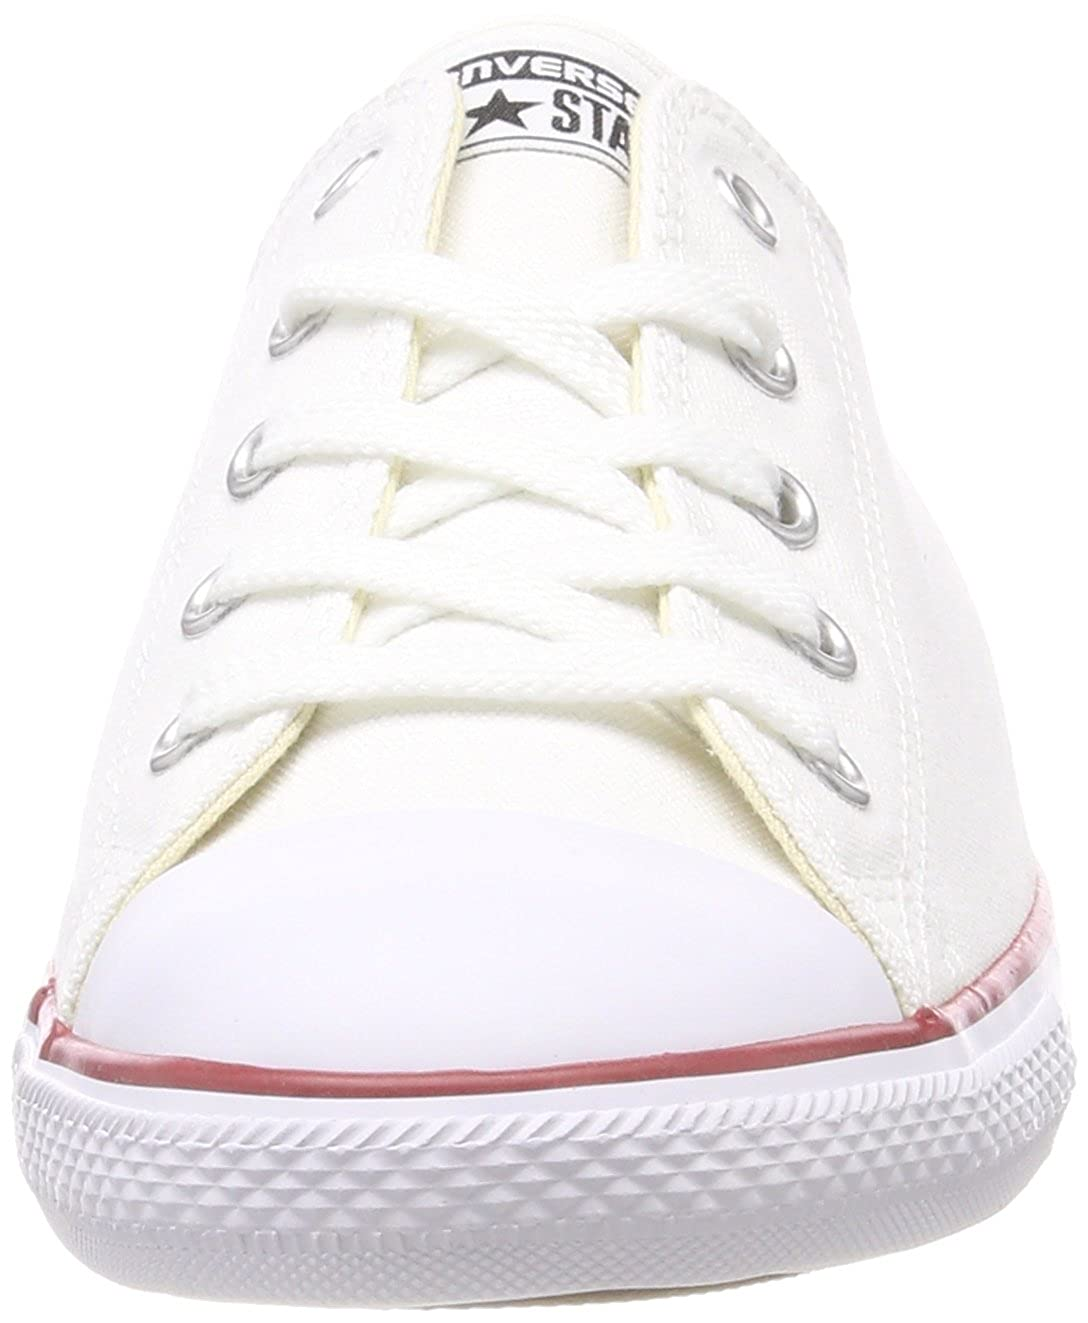 new style f8d7c d153e Converse C537204 Chuck Taylor All Star Dainty, Women Low-Top Sneakers   Amazon.co.uk  Shoes   Bags